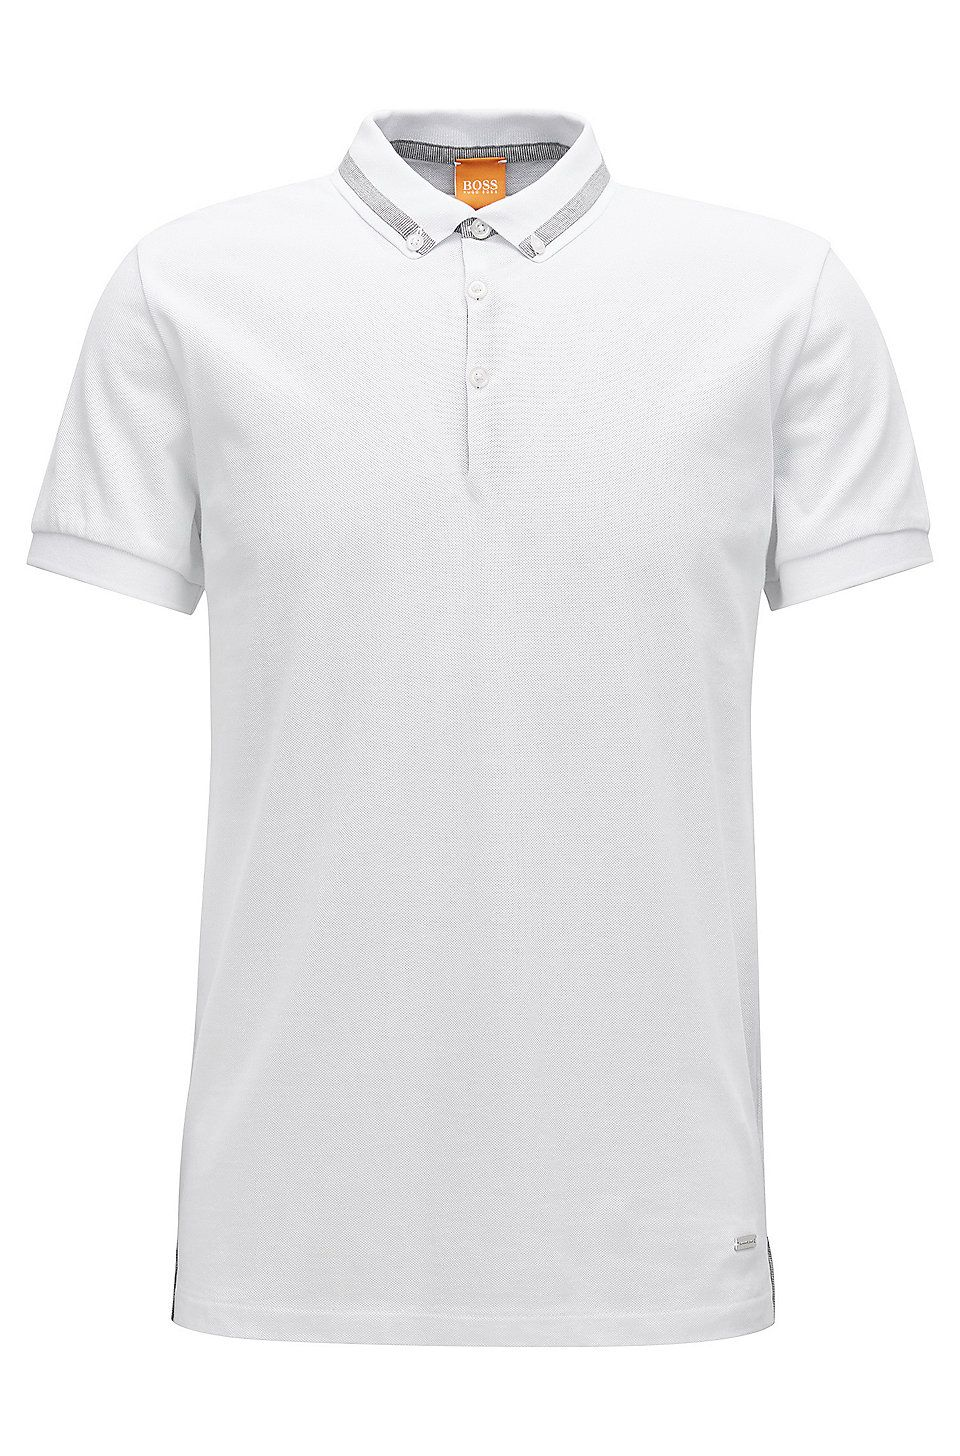 a2e4a92bb Regular-fit polo shirt in piqué cotton White from BOSS Orange for Men for  £59.00 in the official HUGO BOSS Online Store free shipping